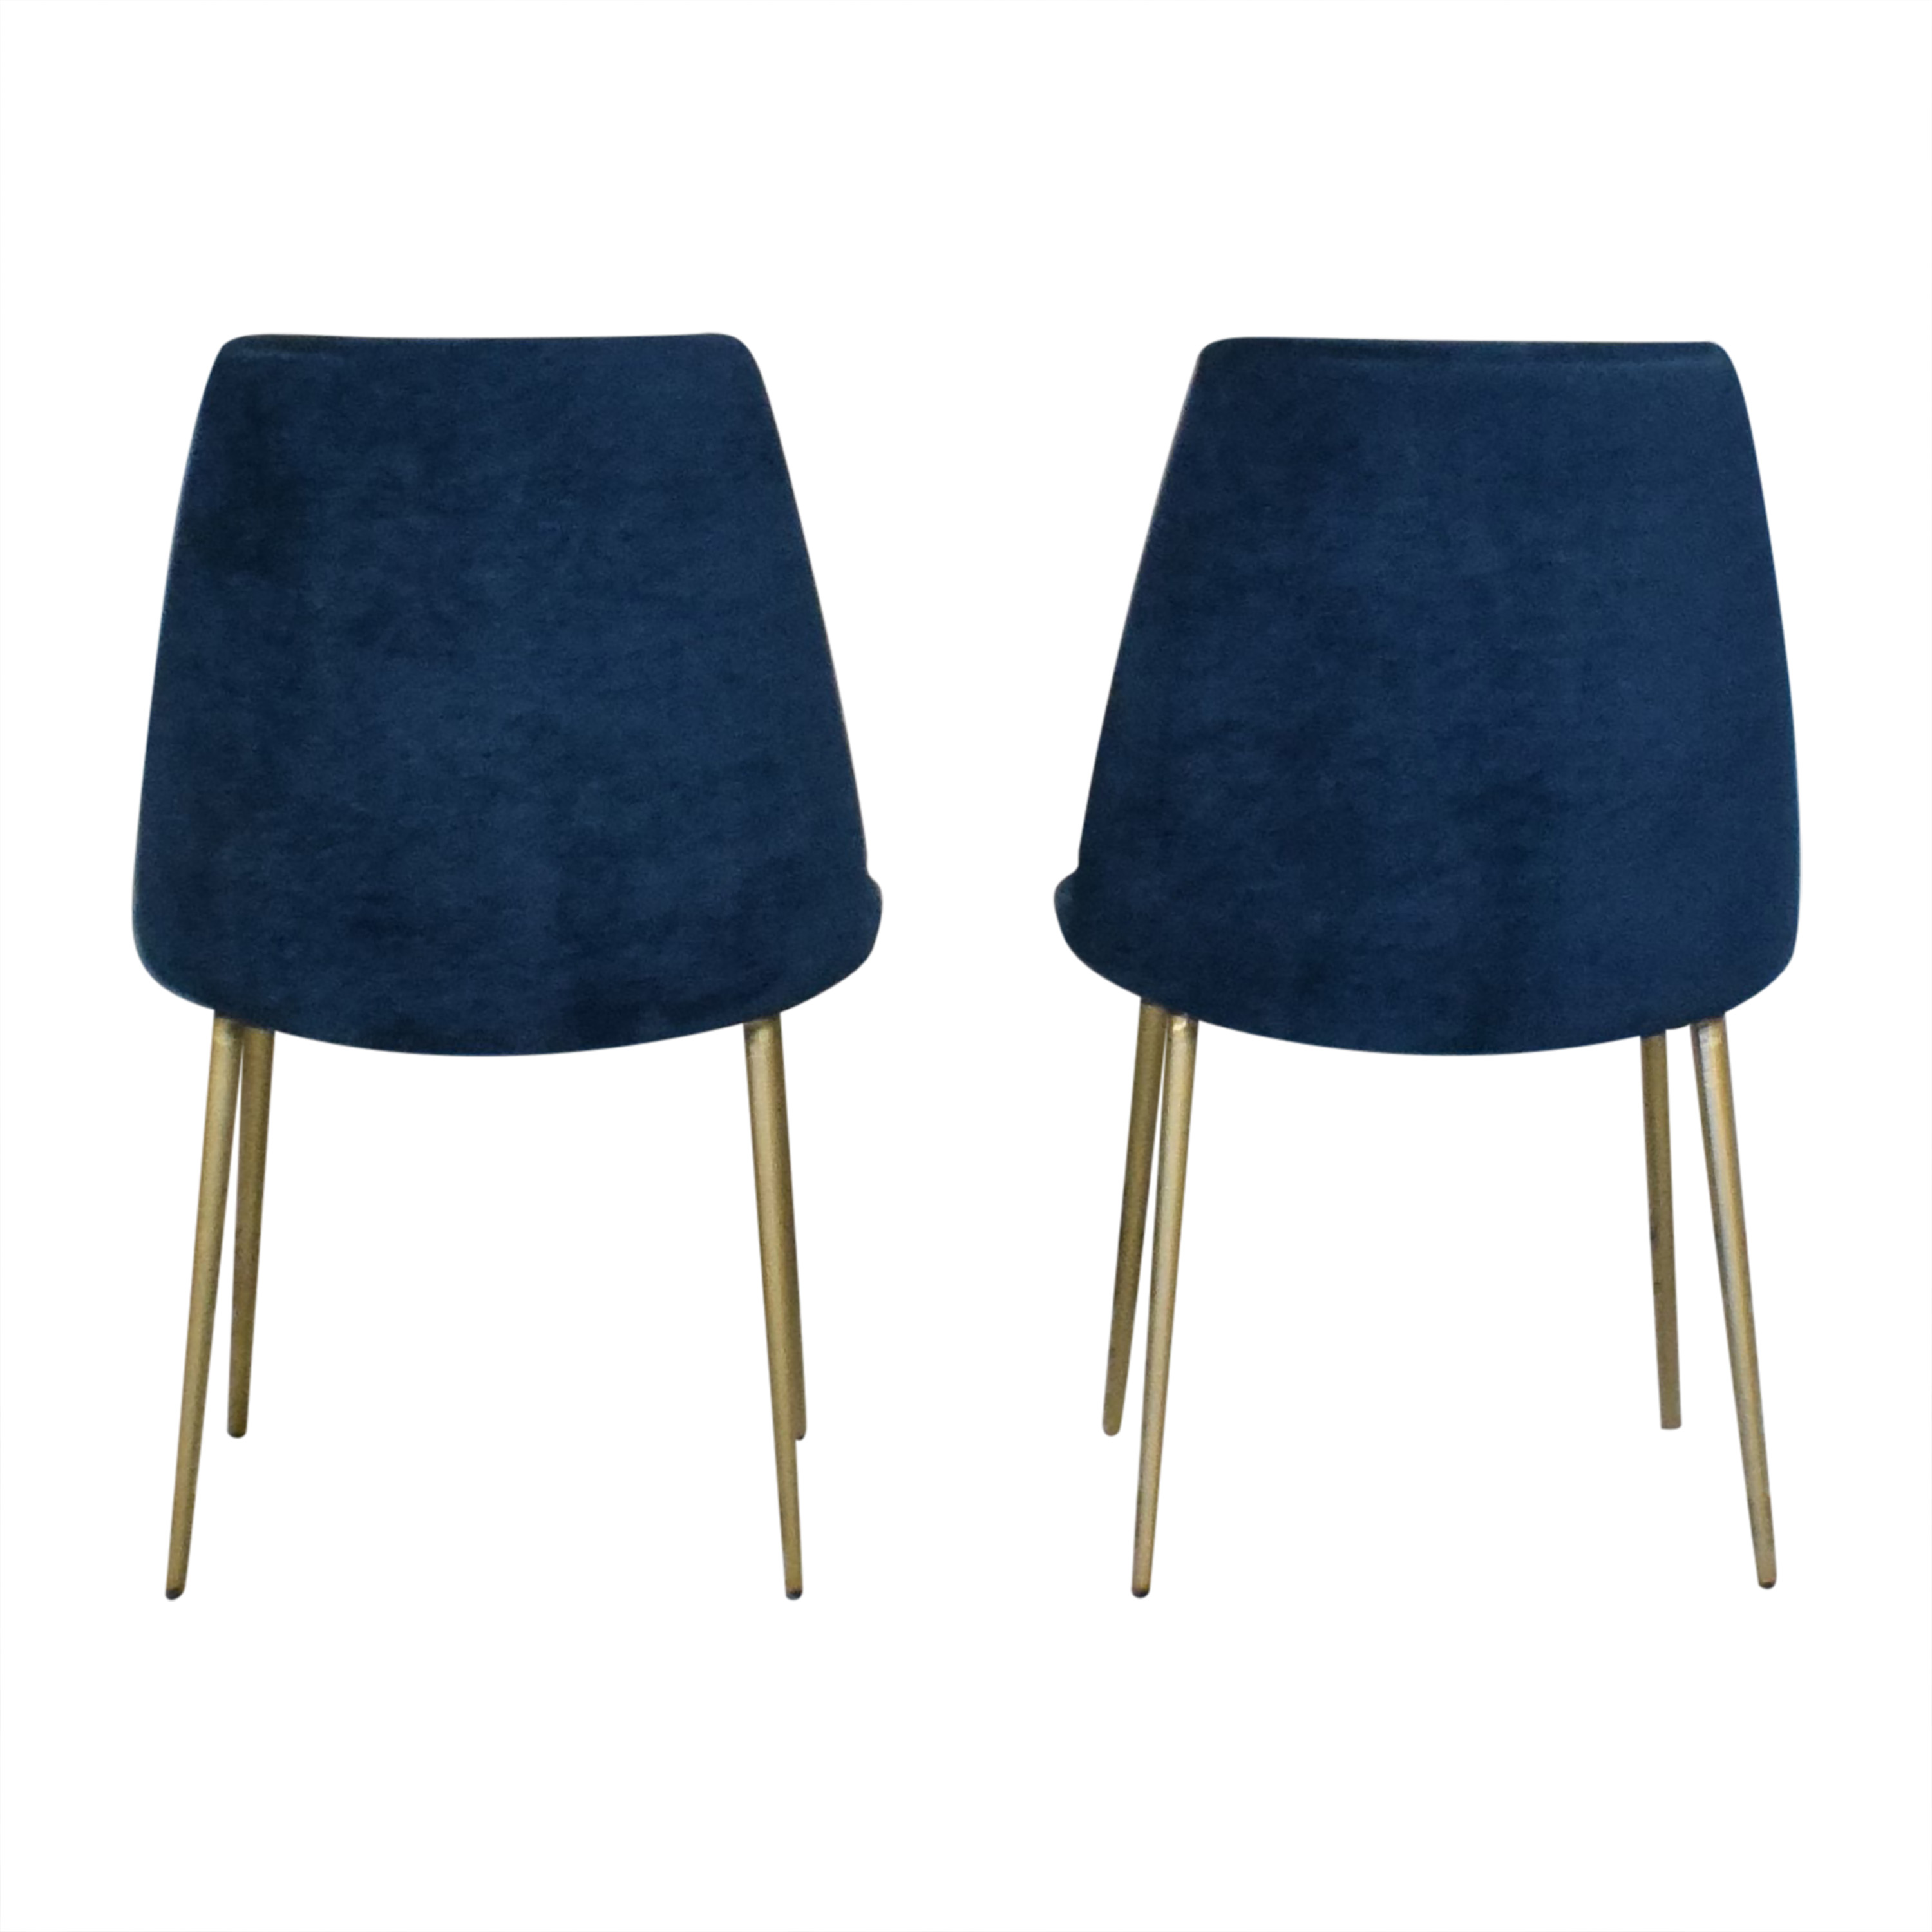 West Elm West Elm Mid-Century Upholstered Dining Chairs for sale